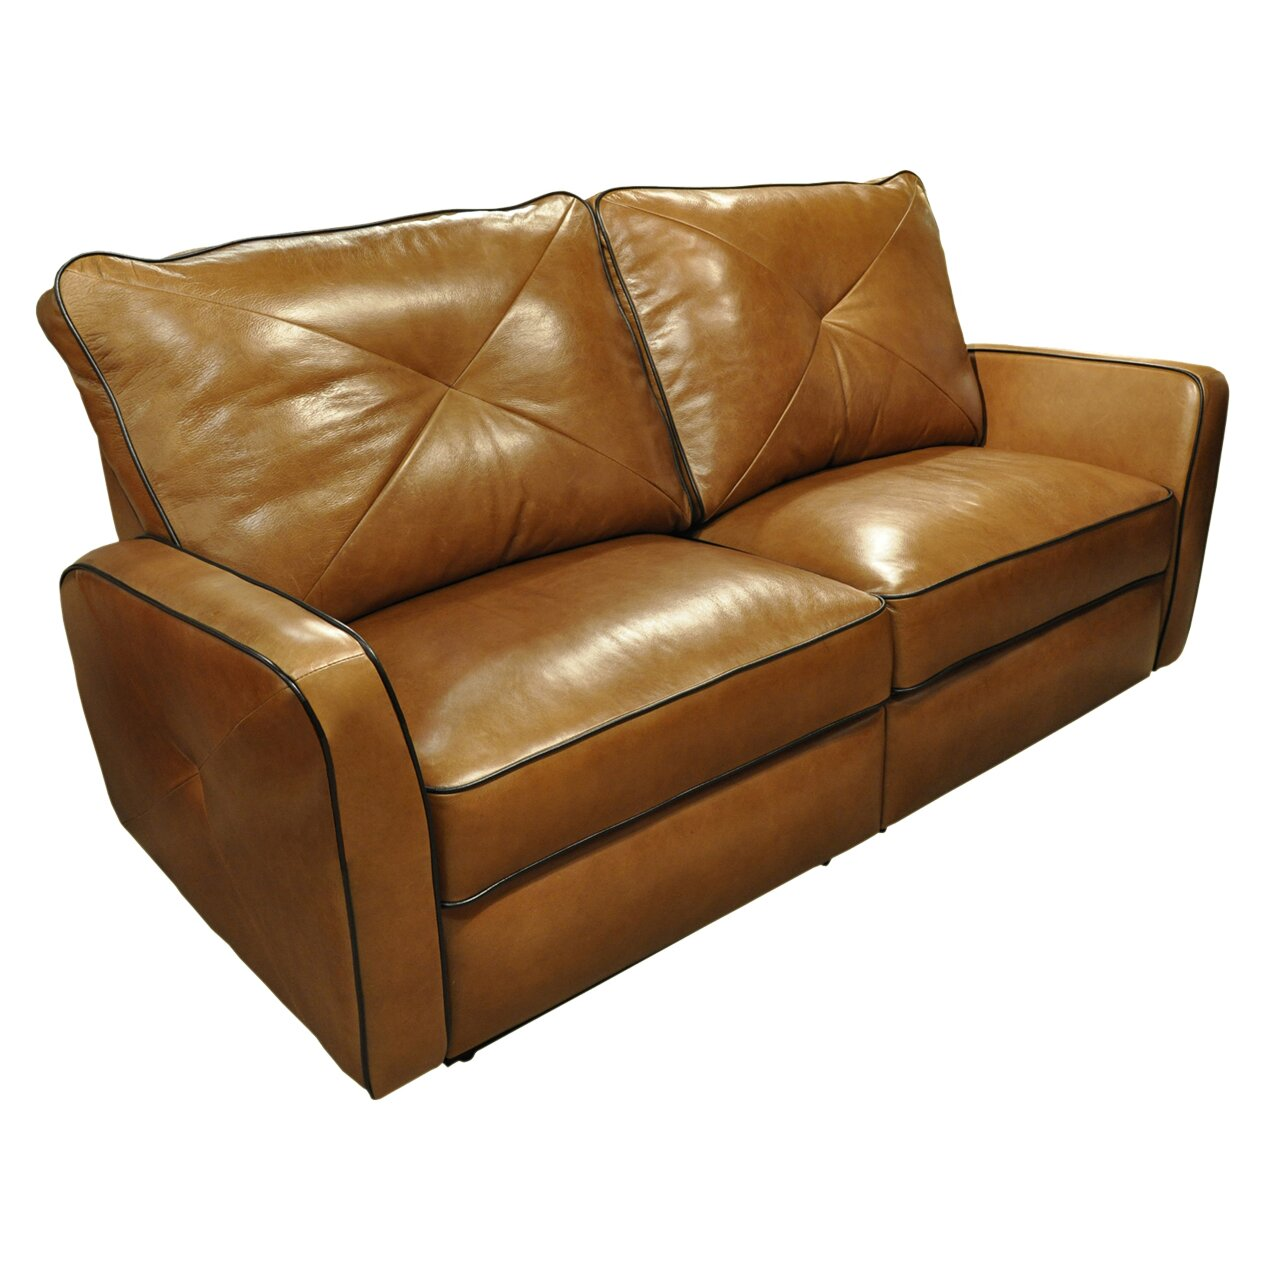 Omnia leather bahama leather reclining loveseat reviews wayfair Leather reclining loveseat